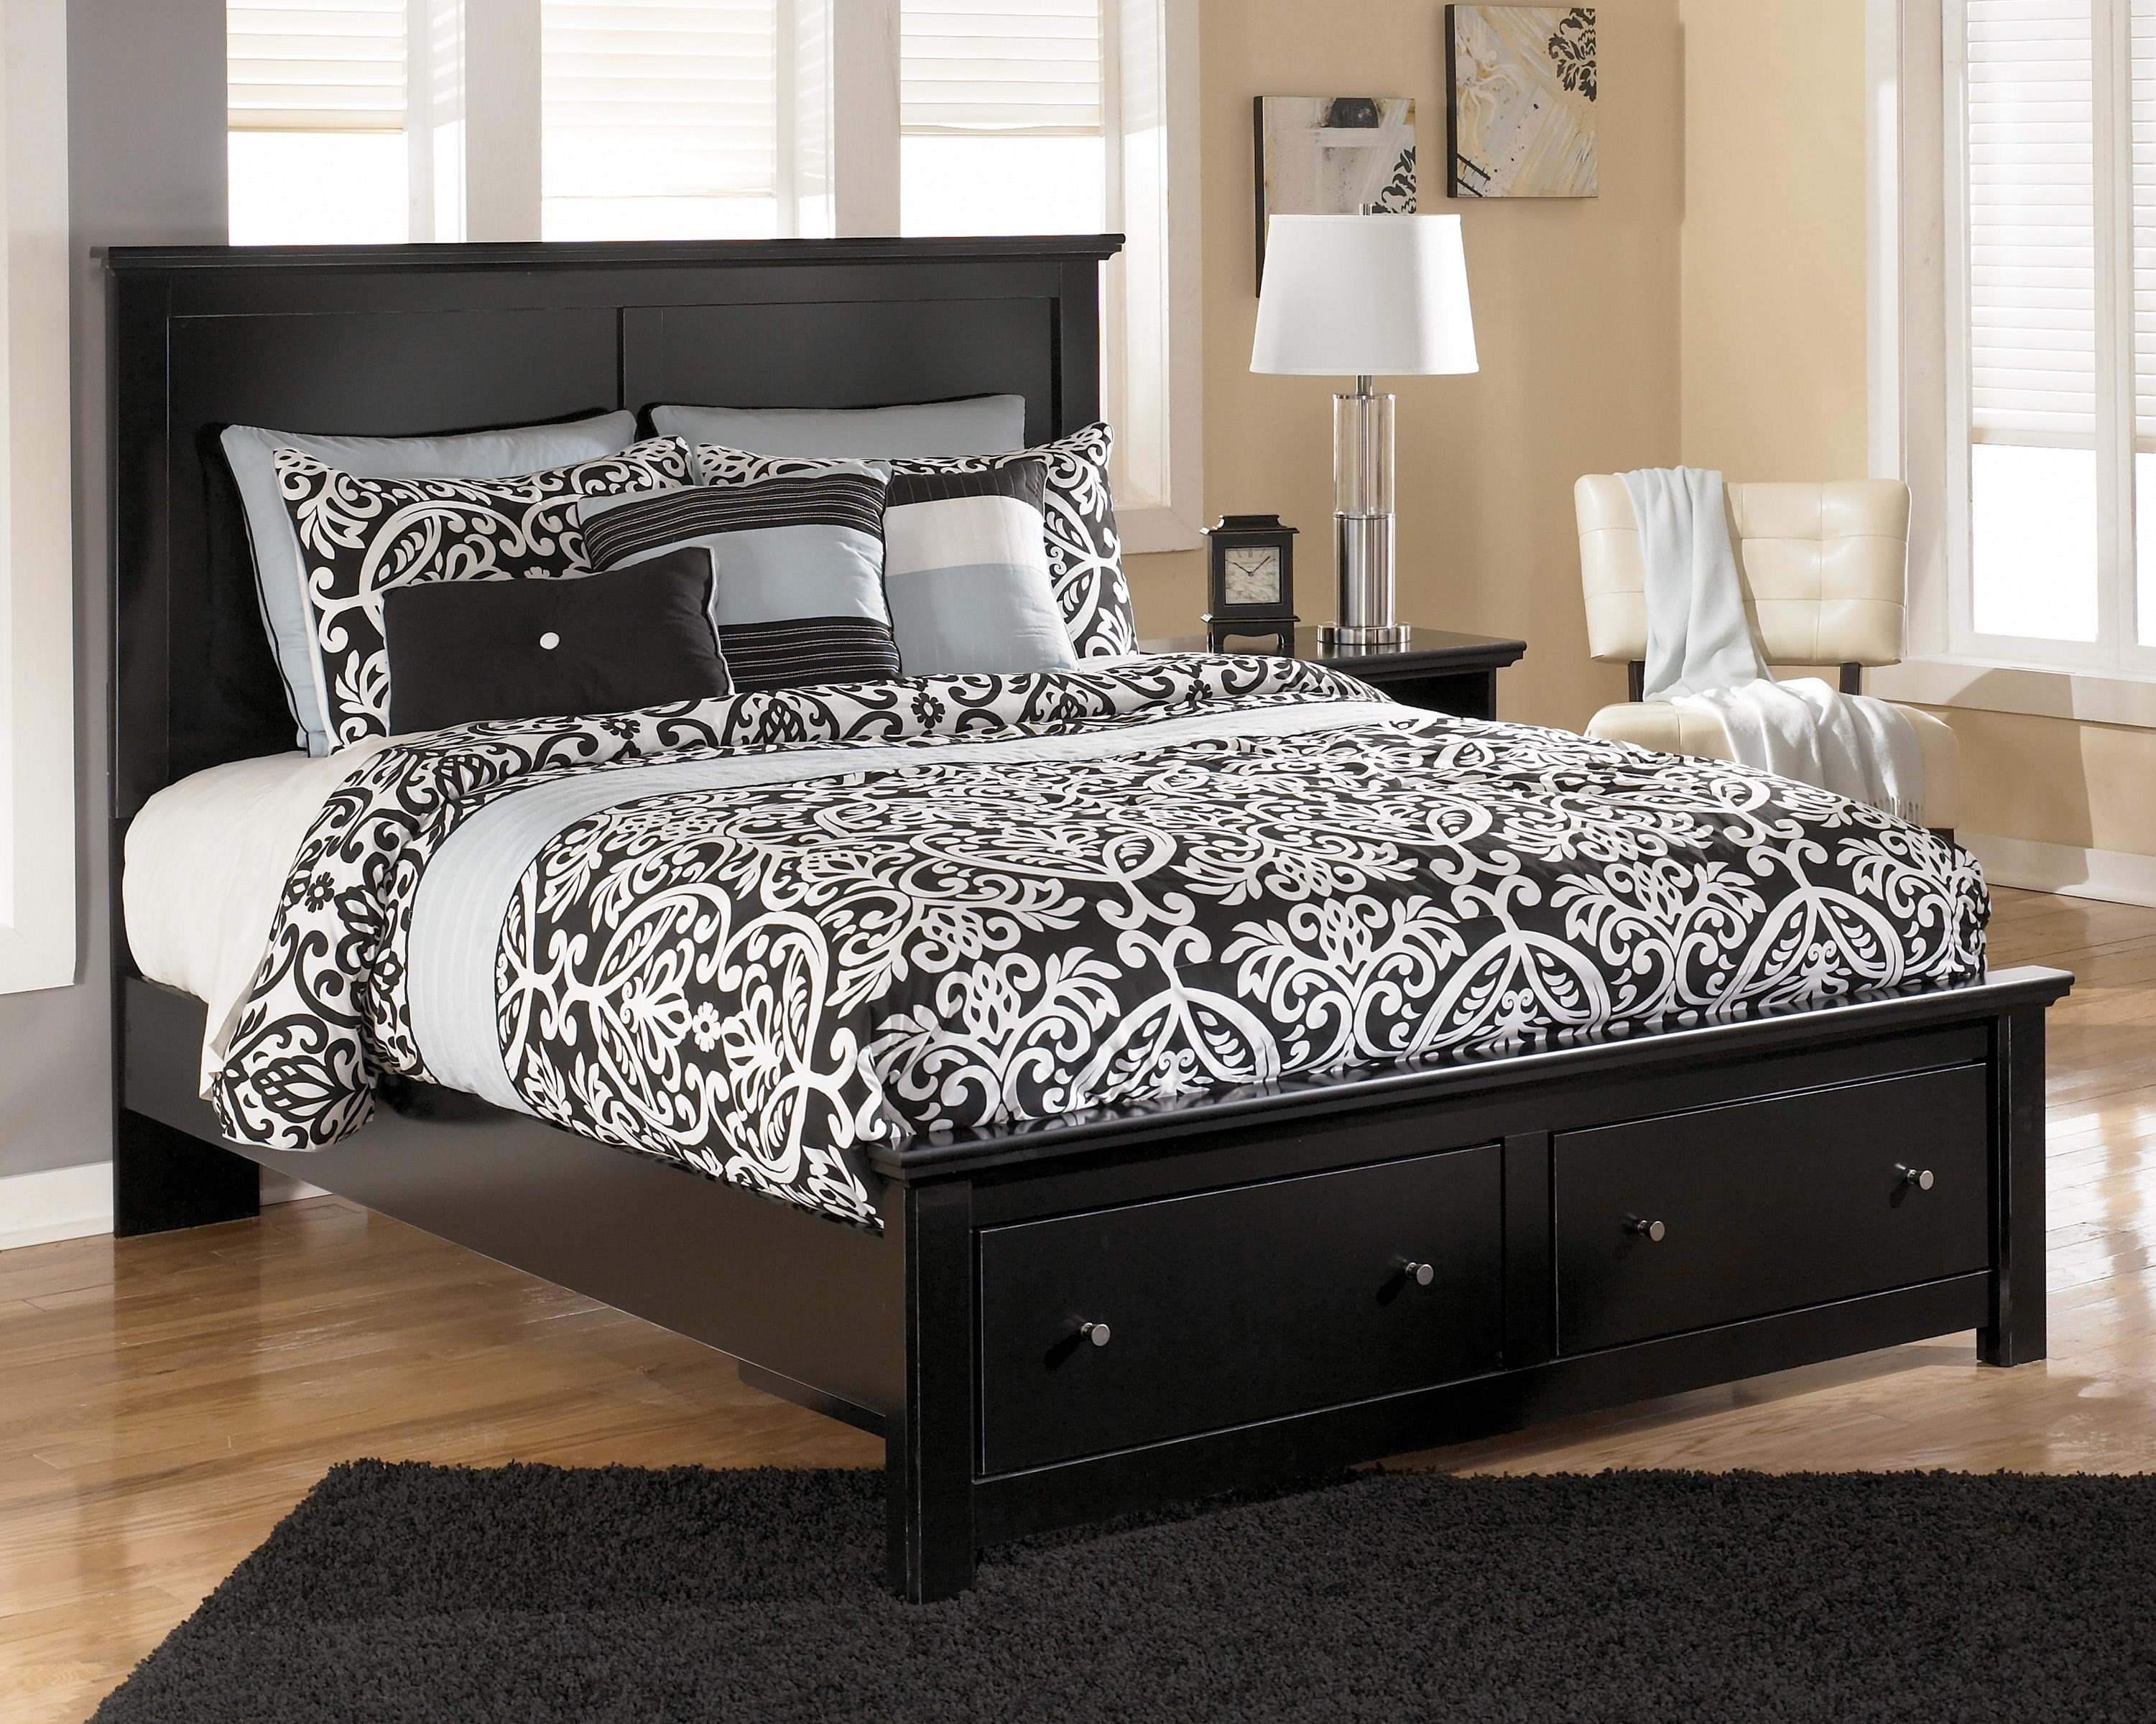 Queen Drawer Bed Queen Size Upholstered Ud Box Spring Wooden Drawer Style Ucsud Rollover